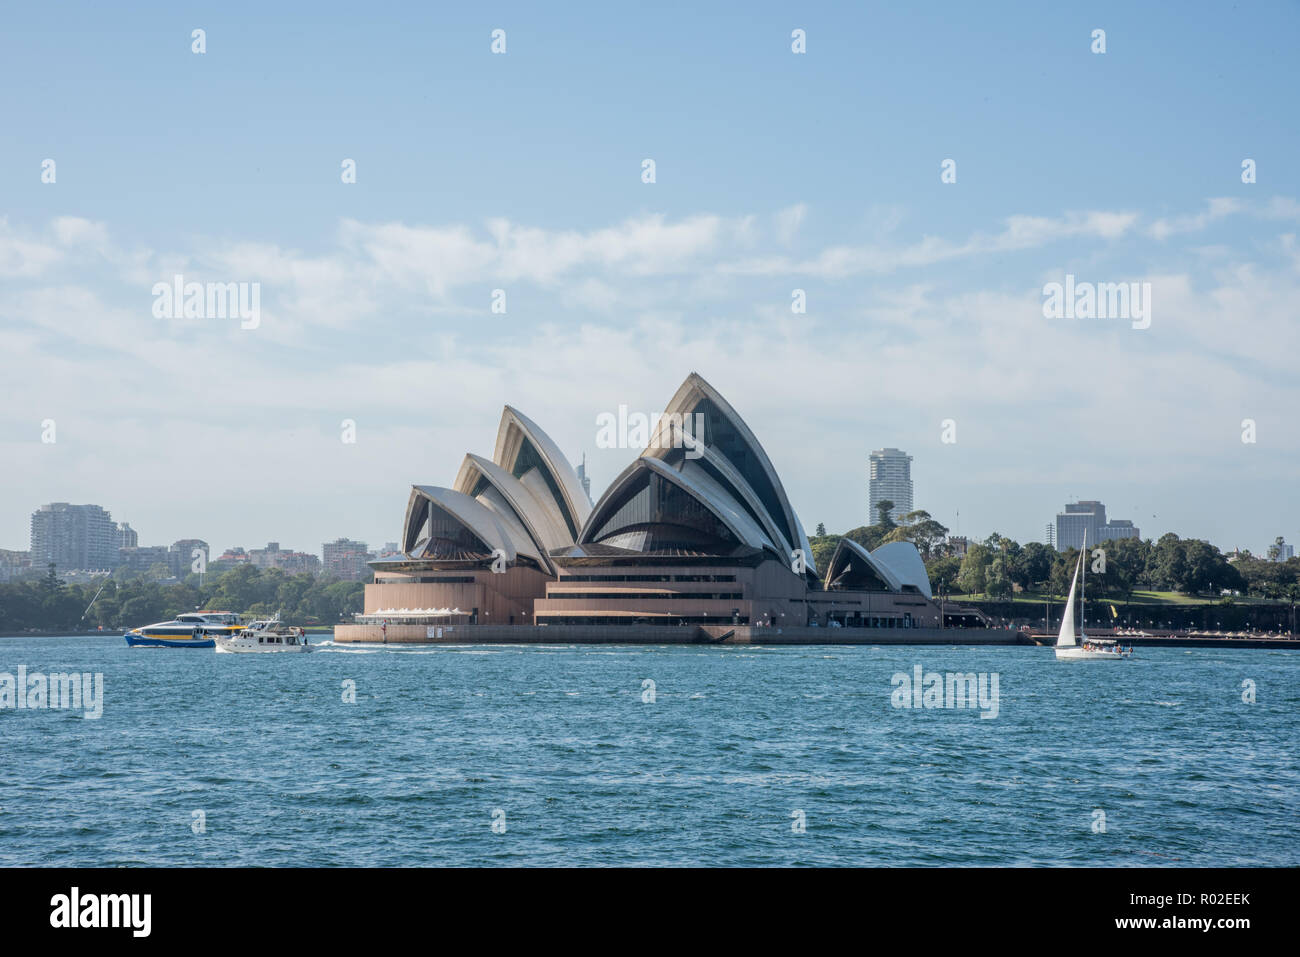 Sydney, New South Wales, Australia-December 21,2016: Sydney Opera House and nautical vessels with tourists in Sydney, Australia - Stock Image